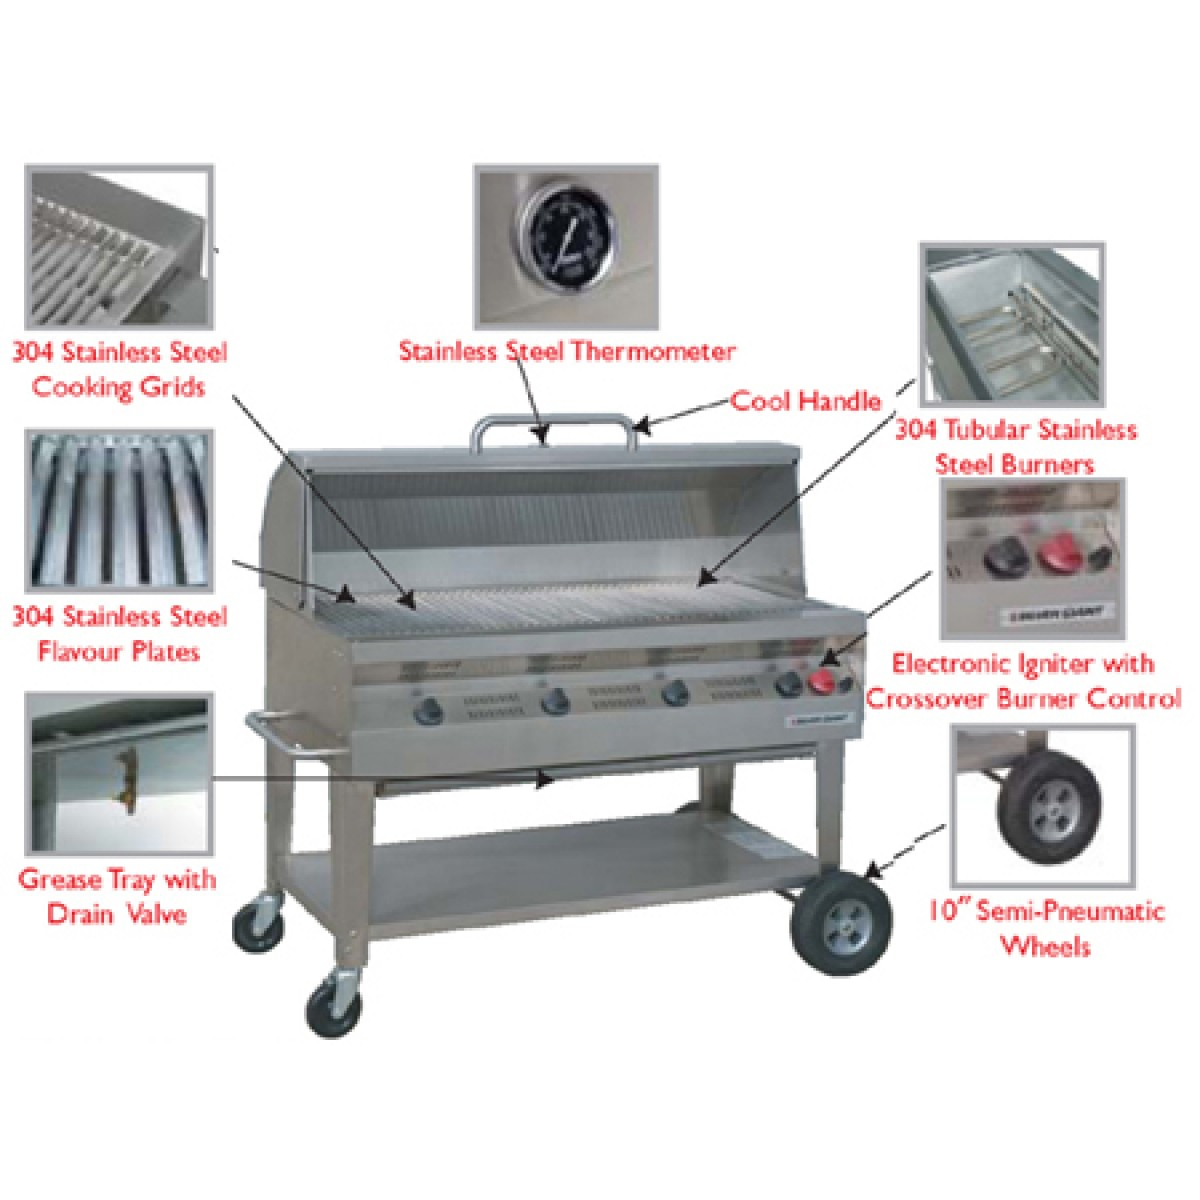 Primo grill assembly instructions